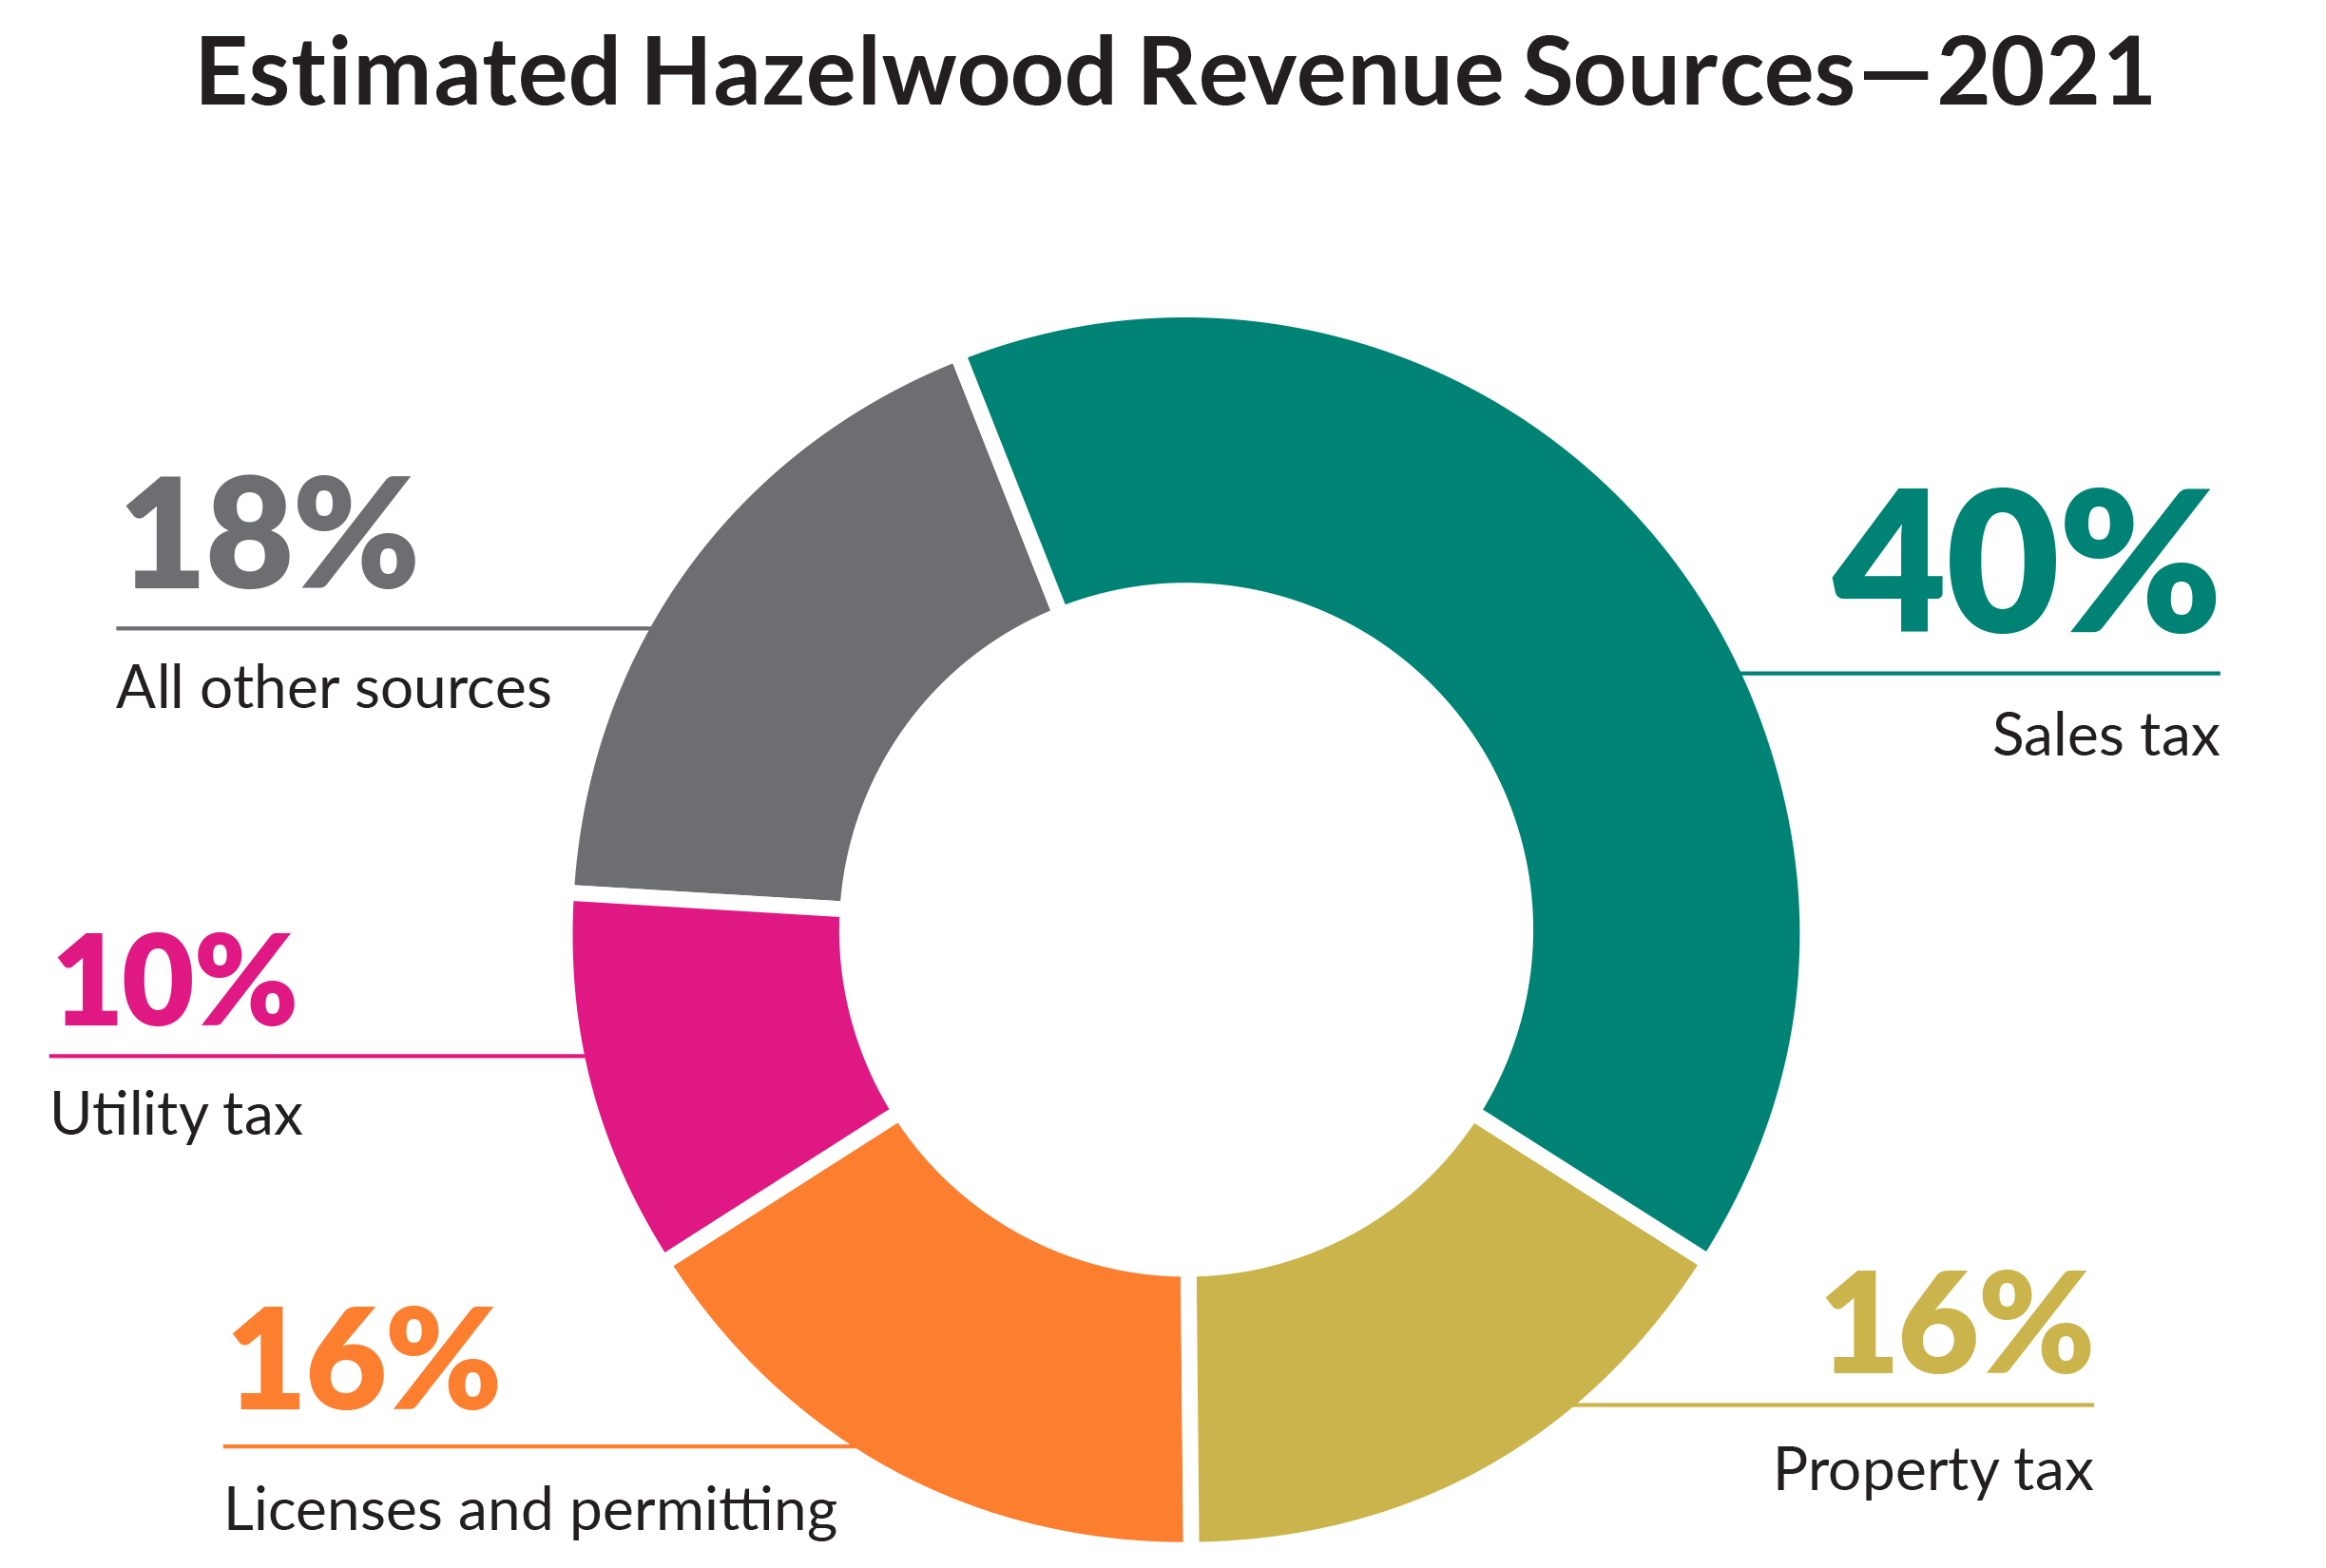 Hazelwood_PieCharts-1